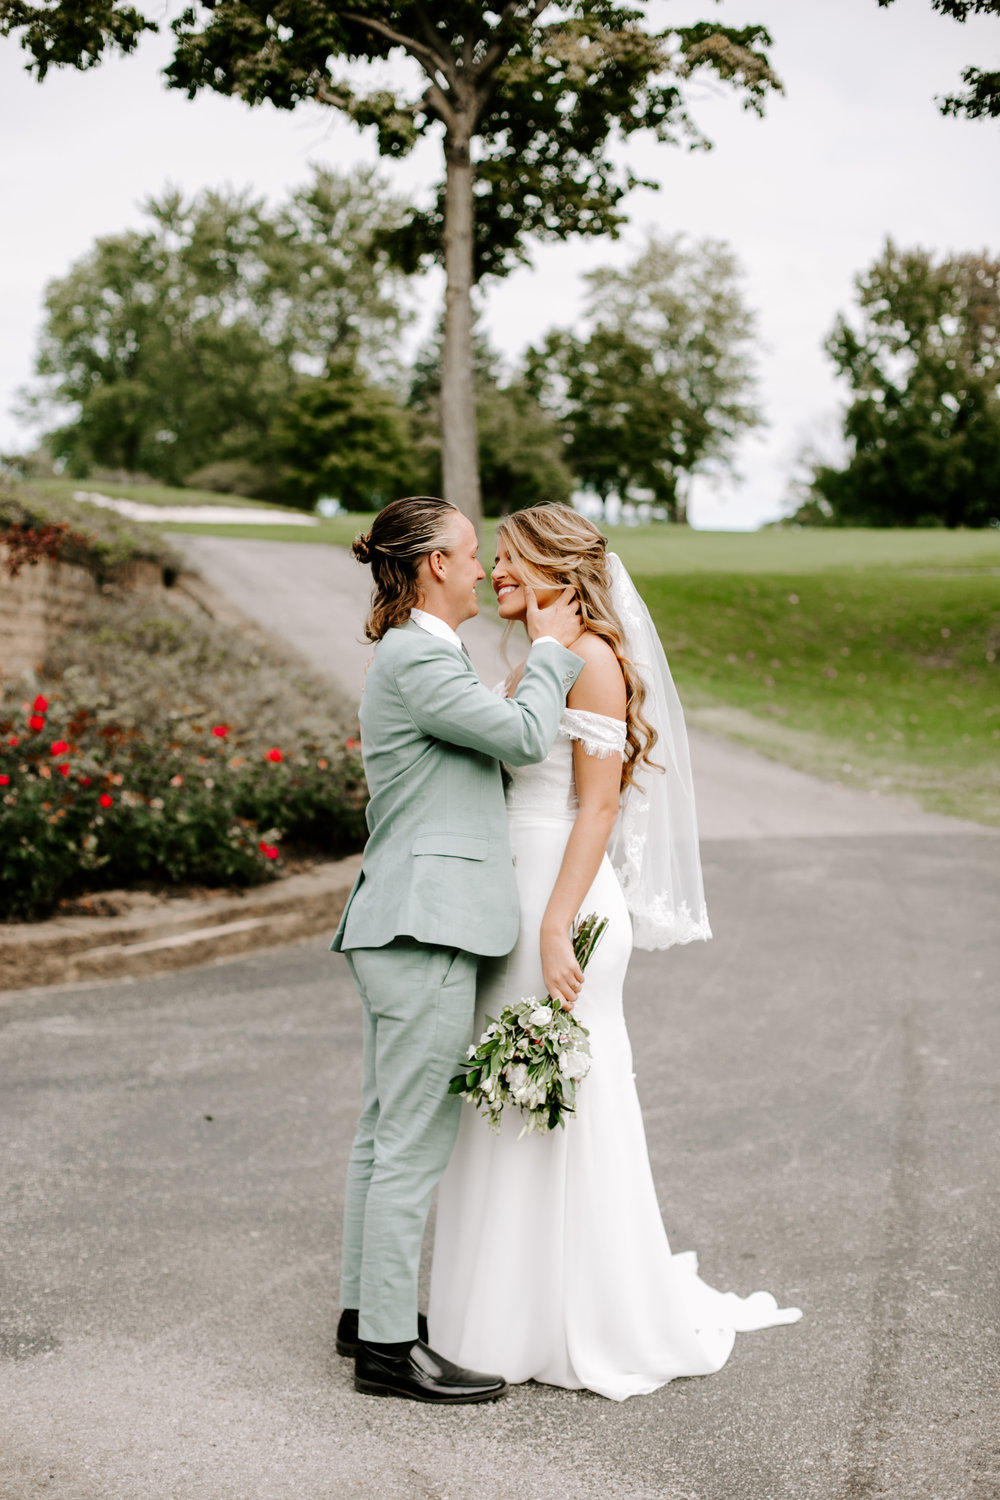 Ashleigh and Jordan Wedding at Hillcrest Country Club in Indianapolis Indiana by Emily Elyse Wehner Photography LLC-139.jpg